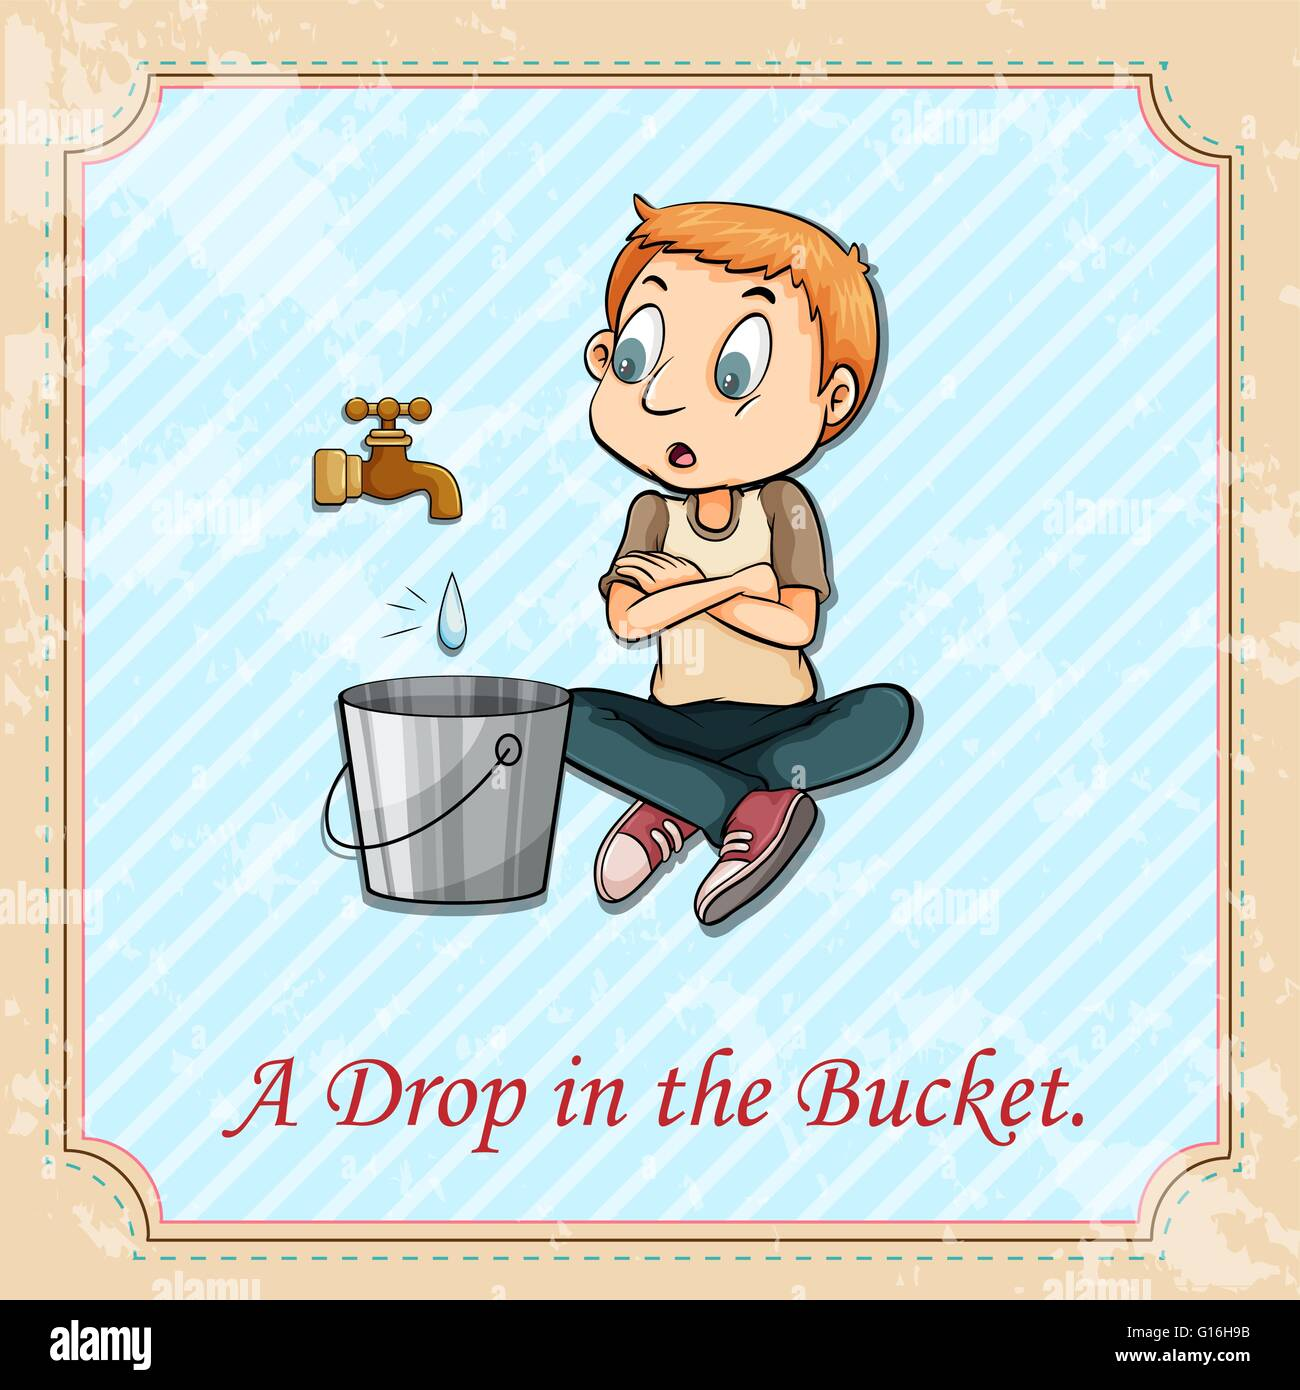 English idiom says a drop in the bucket - Stock Image